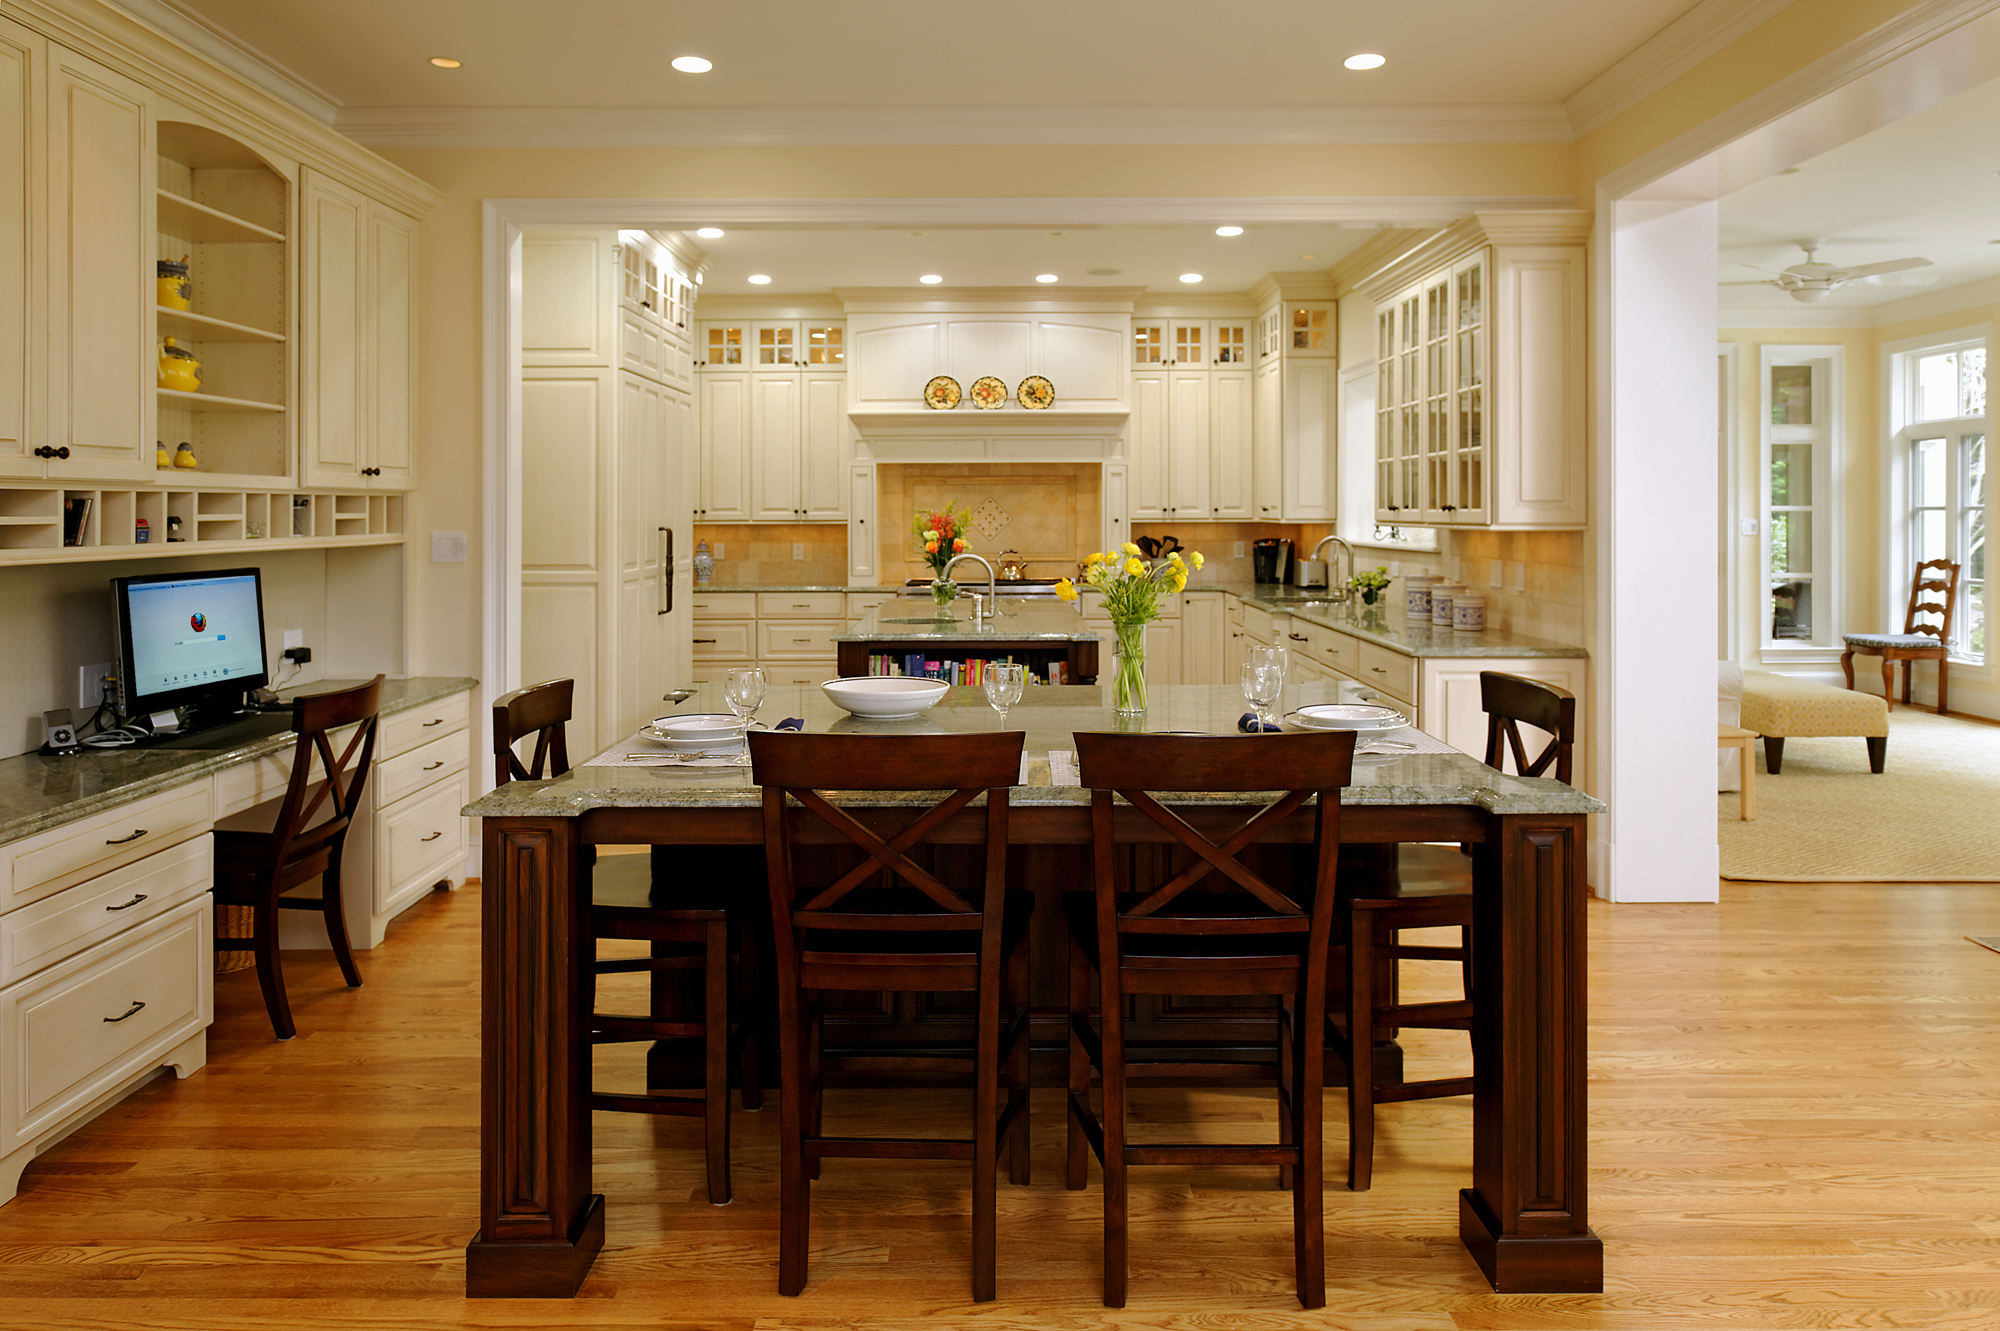 Kitchen Remodeling Virginia Beach Interior Kitchen Design Virginia Beach  Interior Design